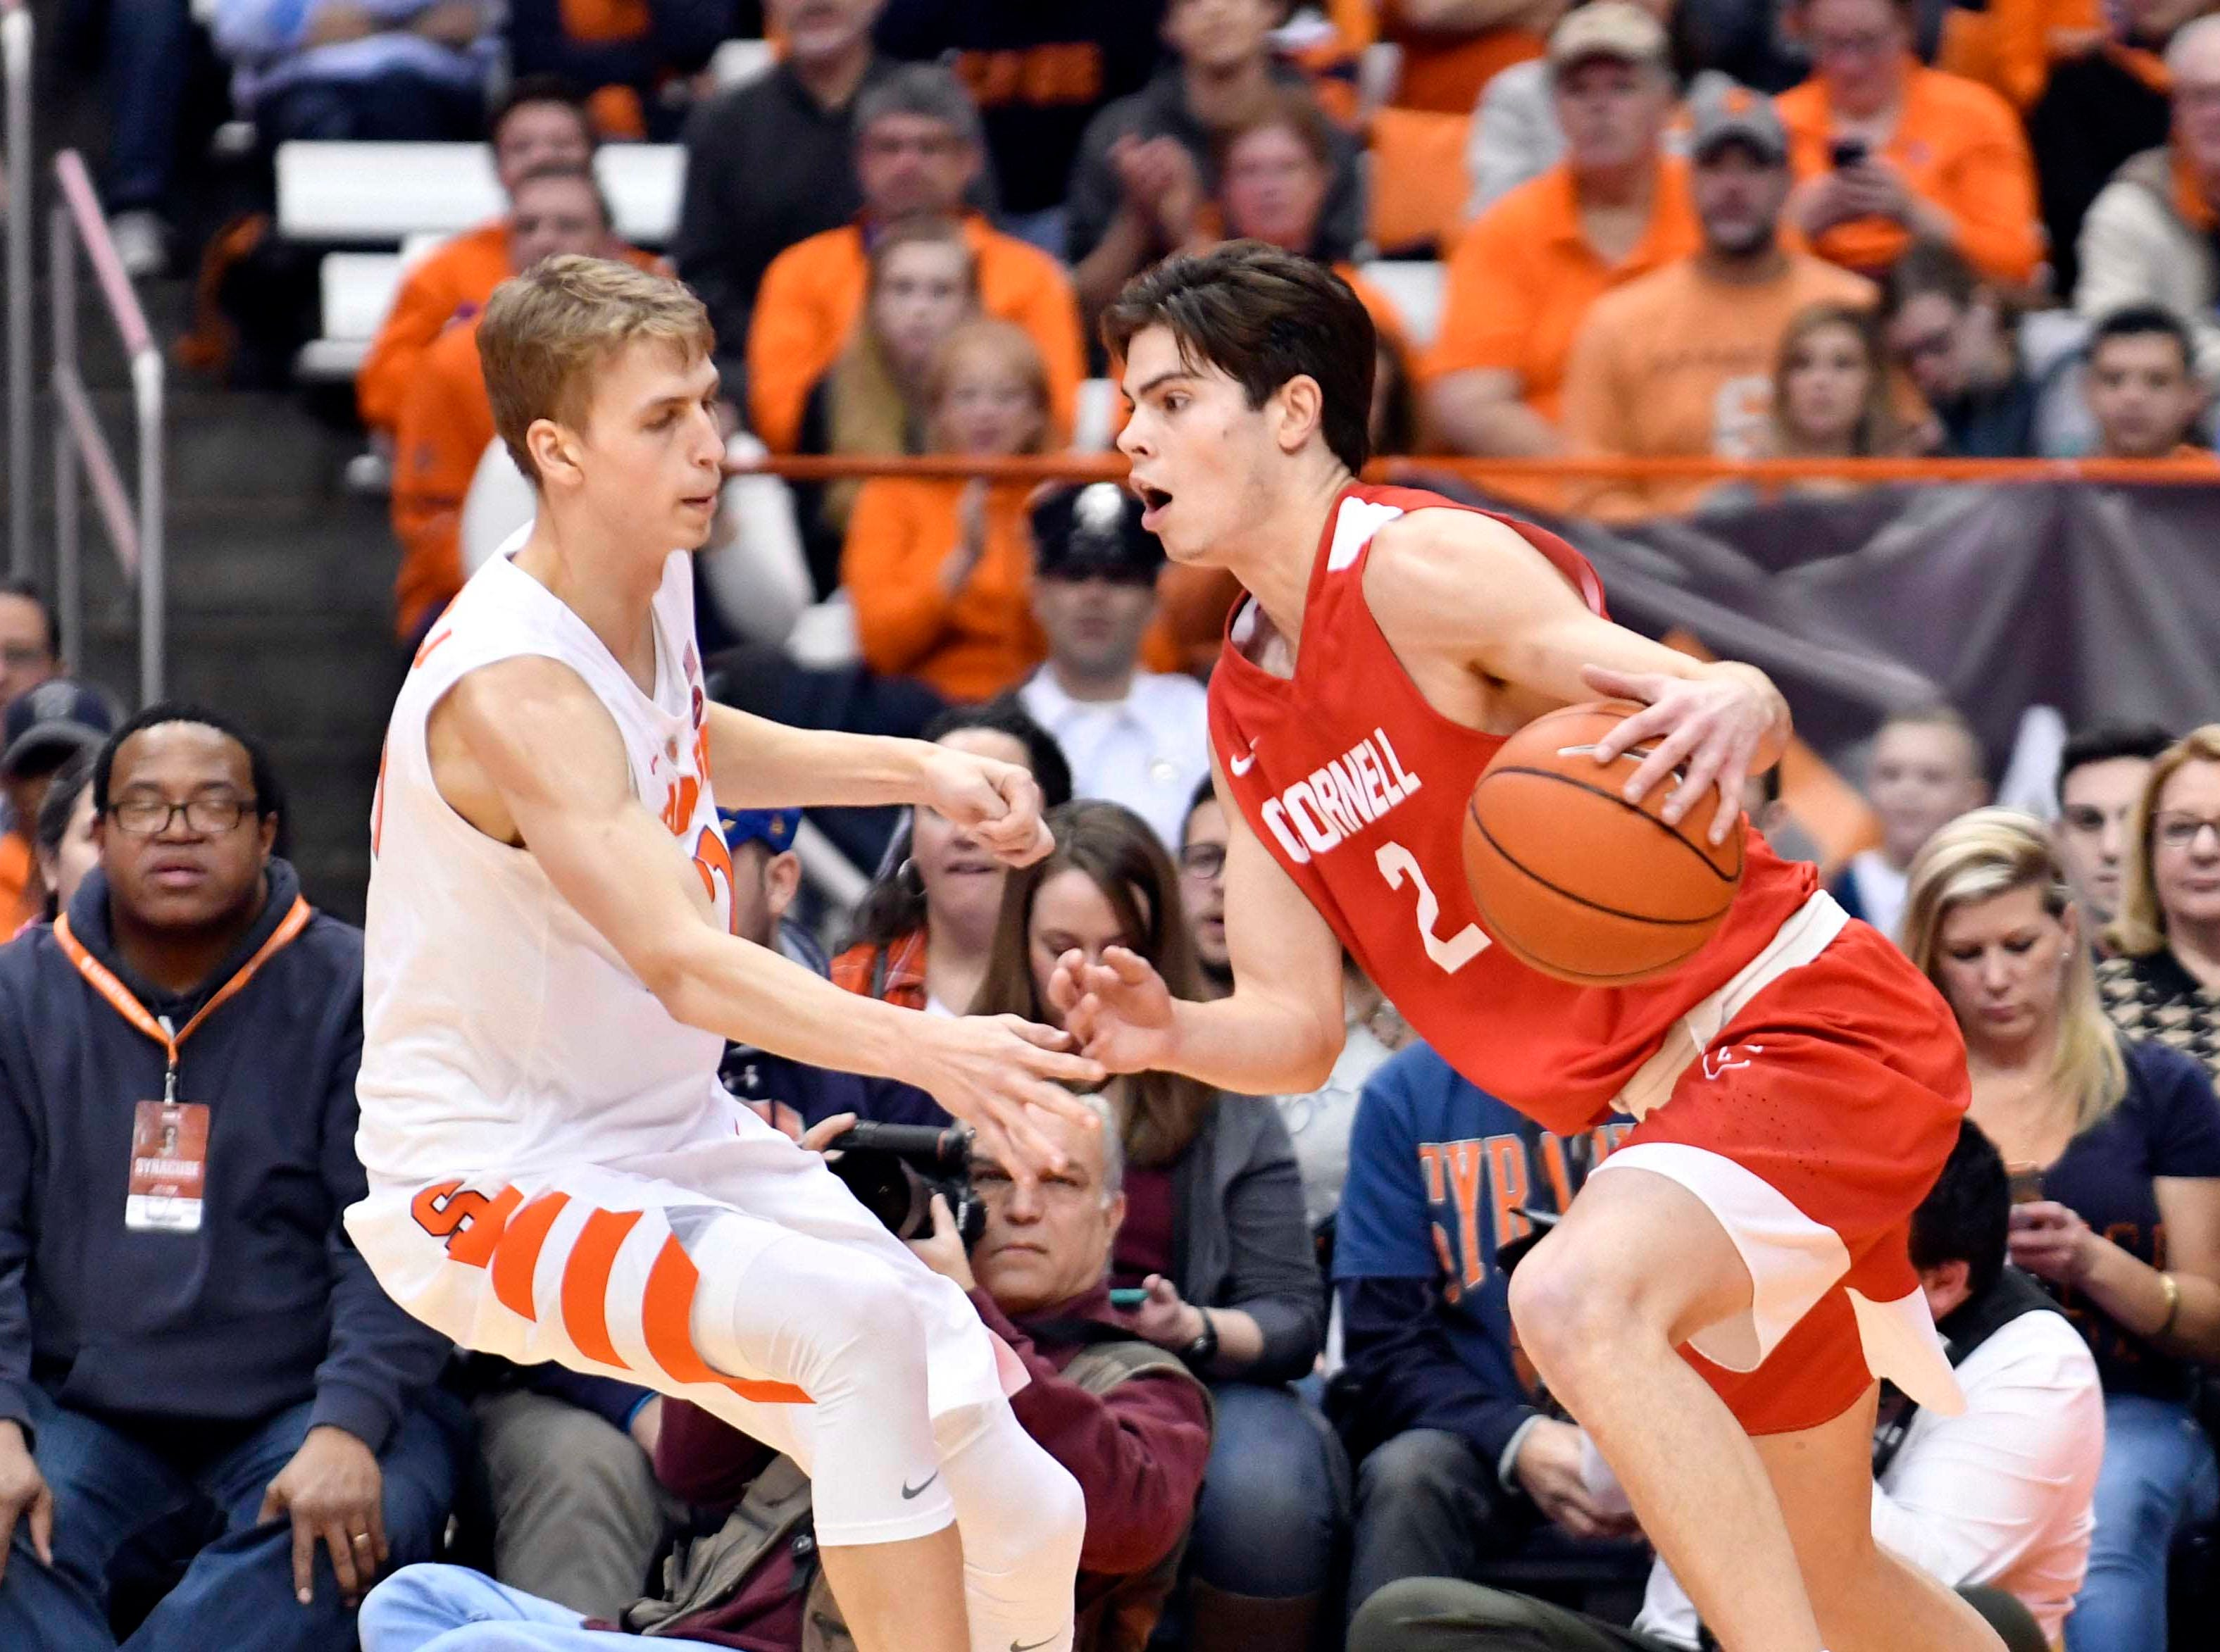 Dec 1, 2018; Syracuse, NY, USA; Cornell Big Red guard Jake Kuhn (2) drives the ball as Syracuse Orange forward Marek Dolezaj (21) defends during the second half at the Carrier Dome. Mandatory Credit: Mark Konezny-USA TODAY Sports